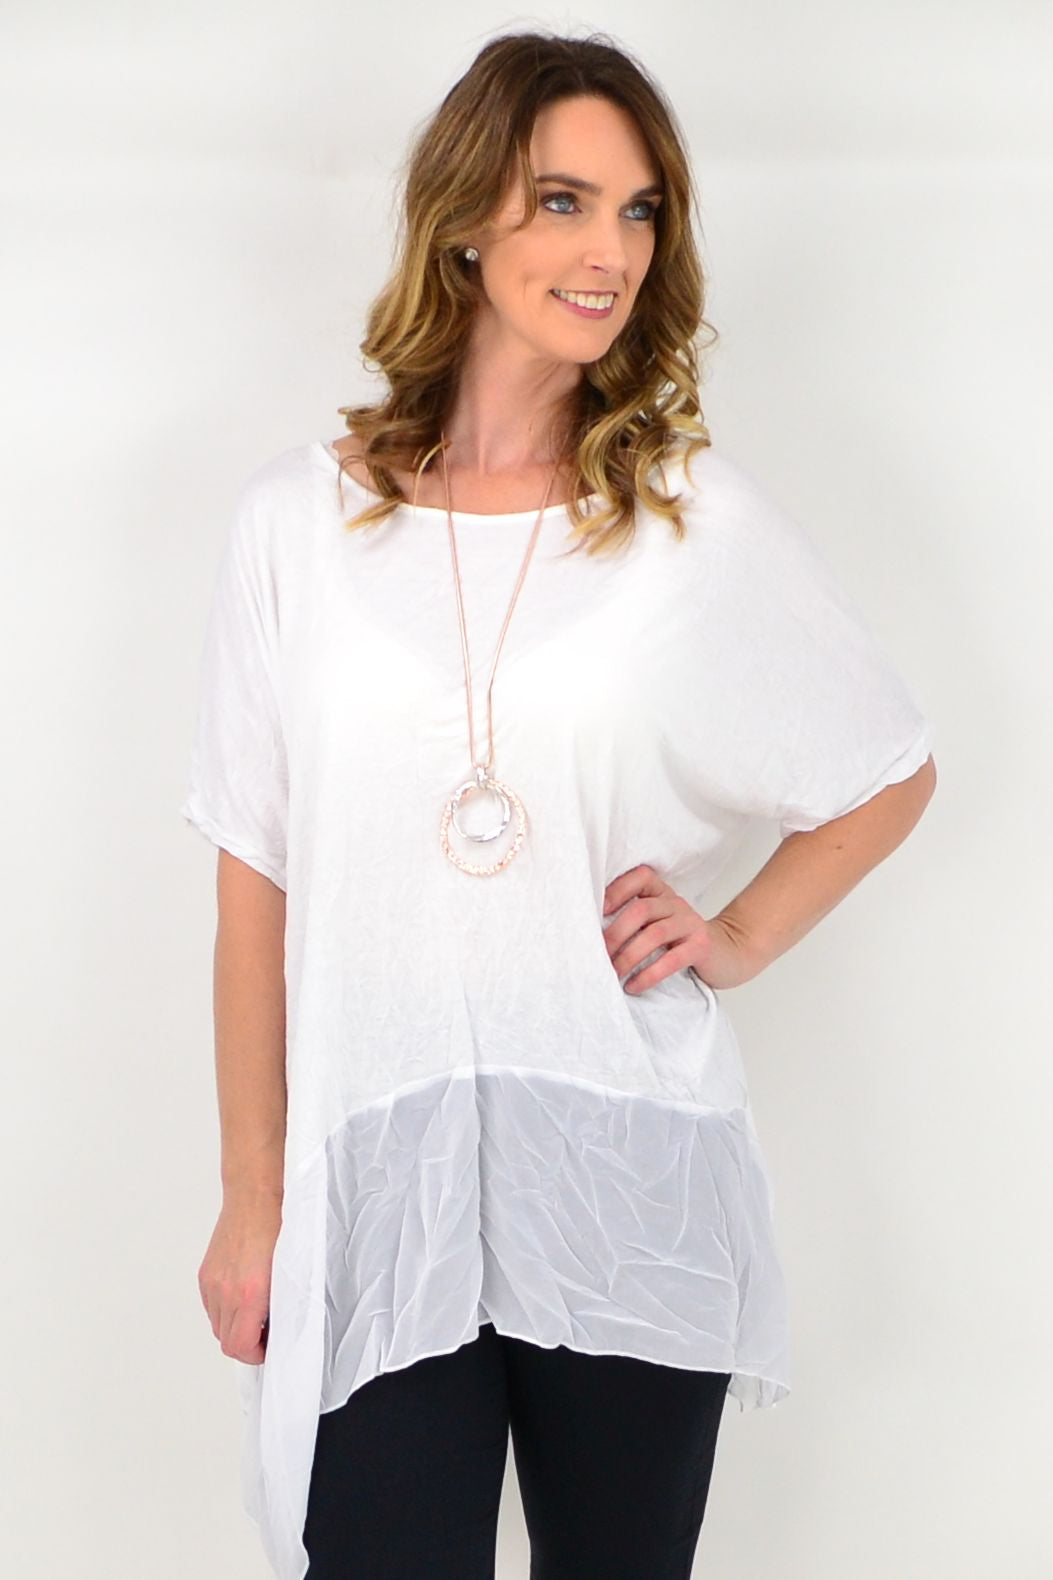 bc5c152ff6810 plus size clothing Australia. womens fashion online australia. Bamboo  Clothing Ladies Wear. White Heron Island Tunic